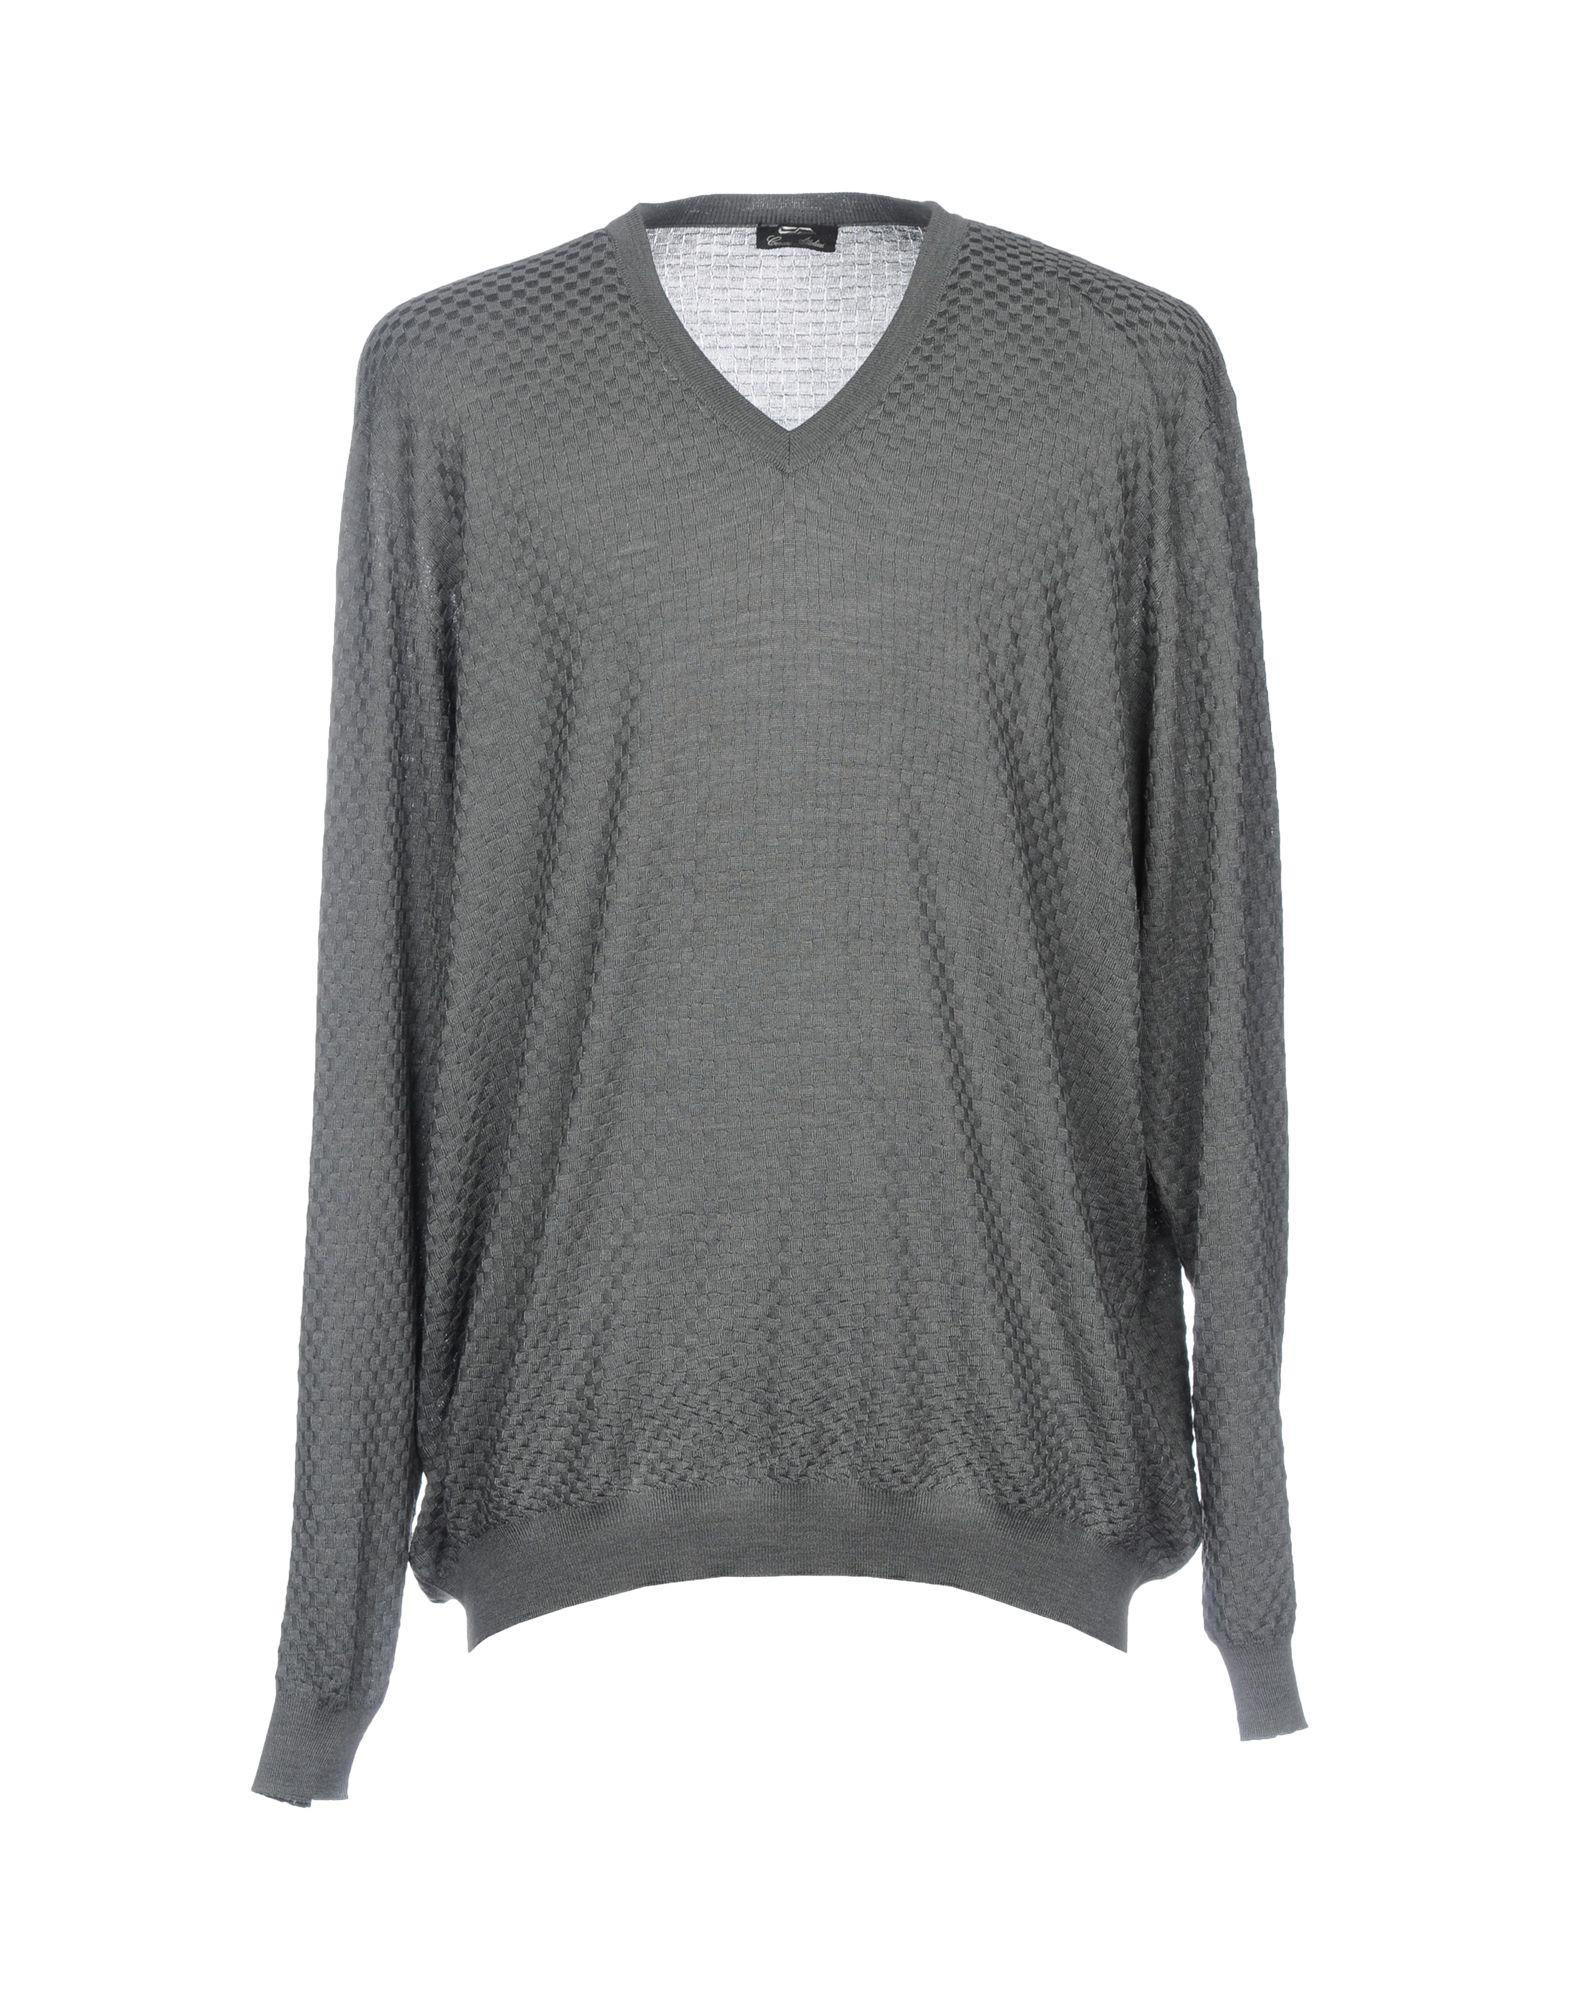 KNITWEAR - Jumpers Cesare Attolini Sale Real From China For Sale mqfELj696